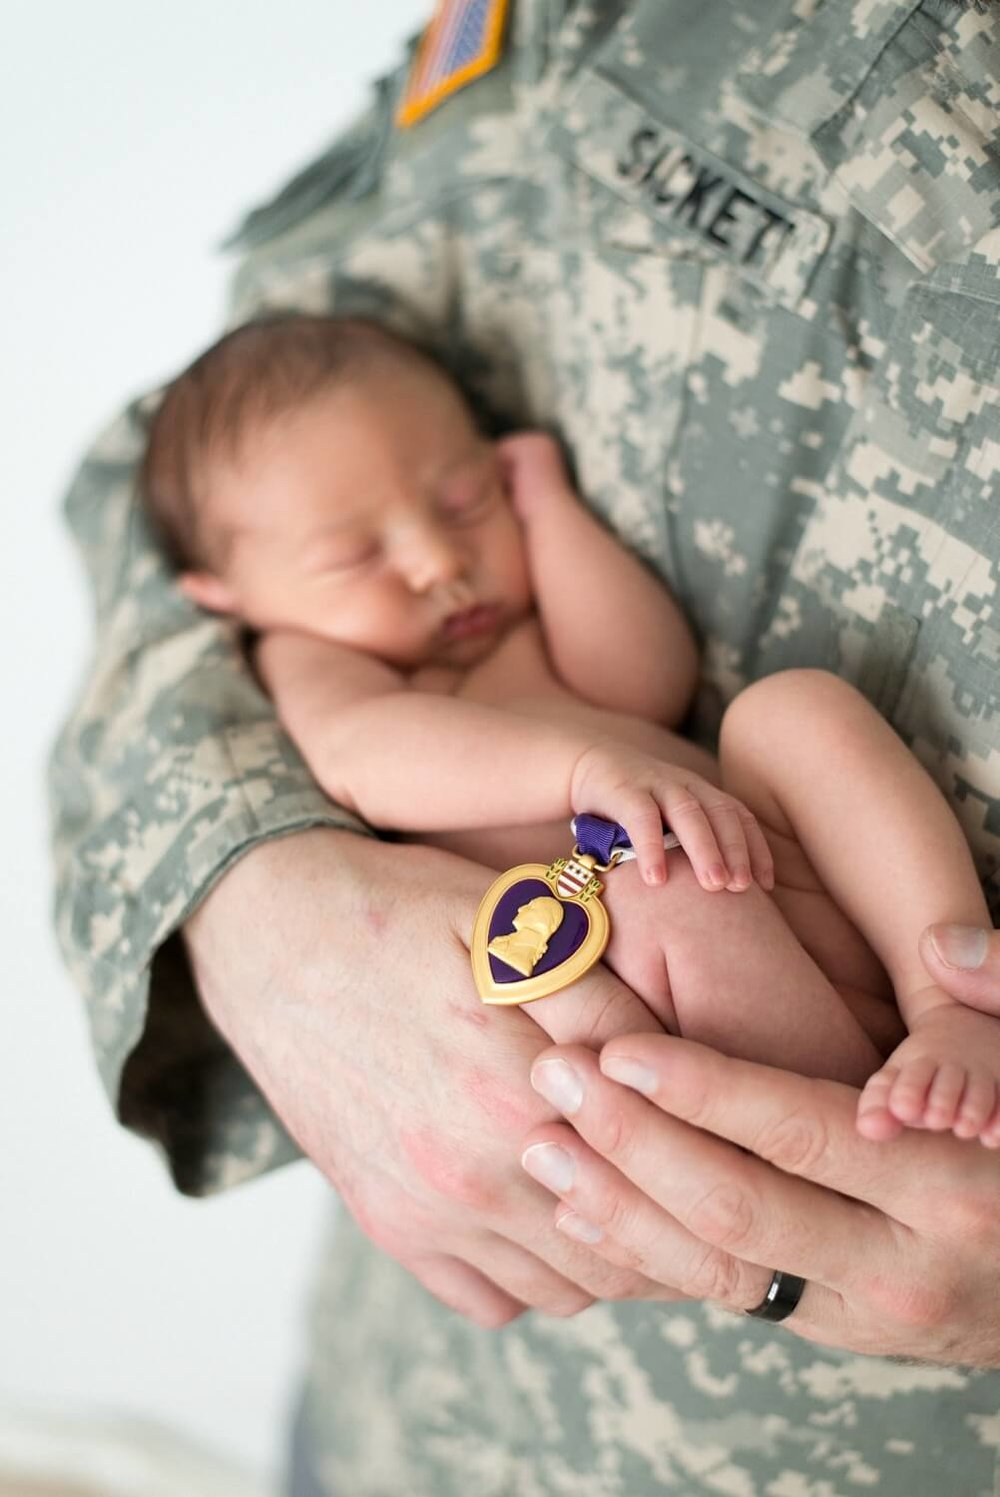 best-portland-oregon-newborn-photographer-veteran-military-dad-purple-heart-and-baby-shelley-marie-photo-2.jpg